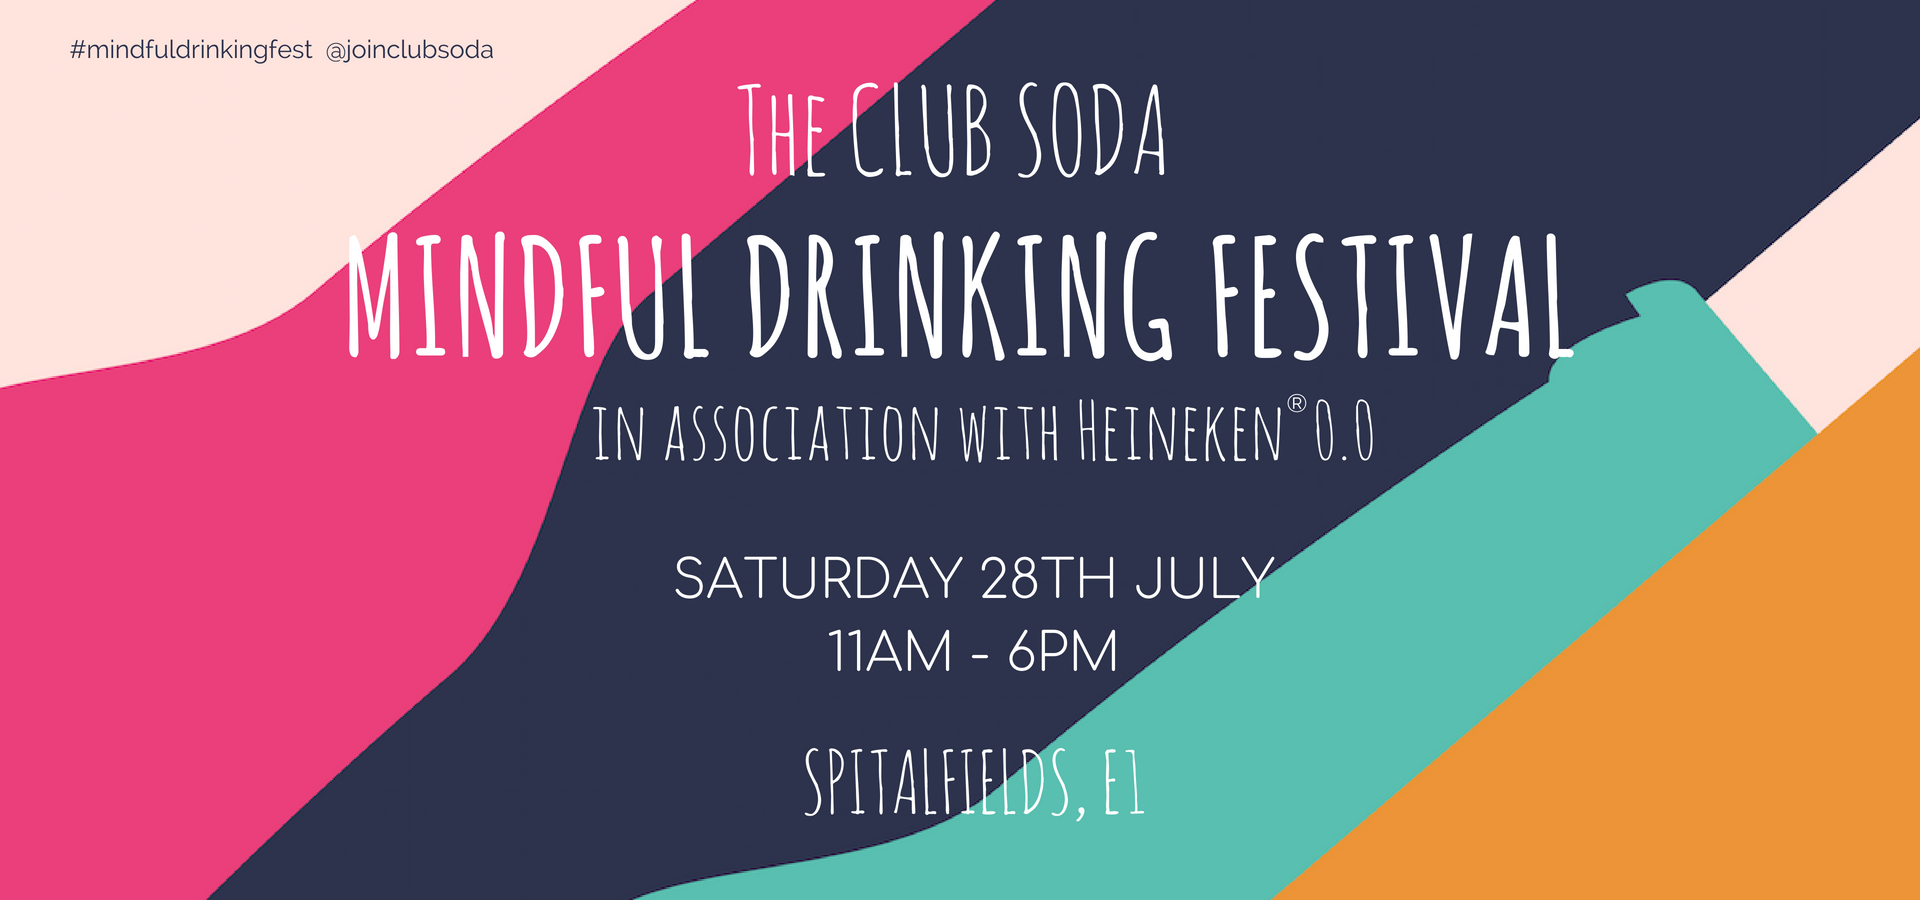 Mindful Drinking Festival